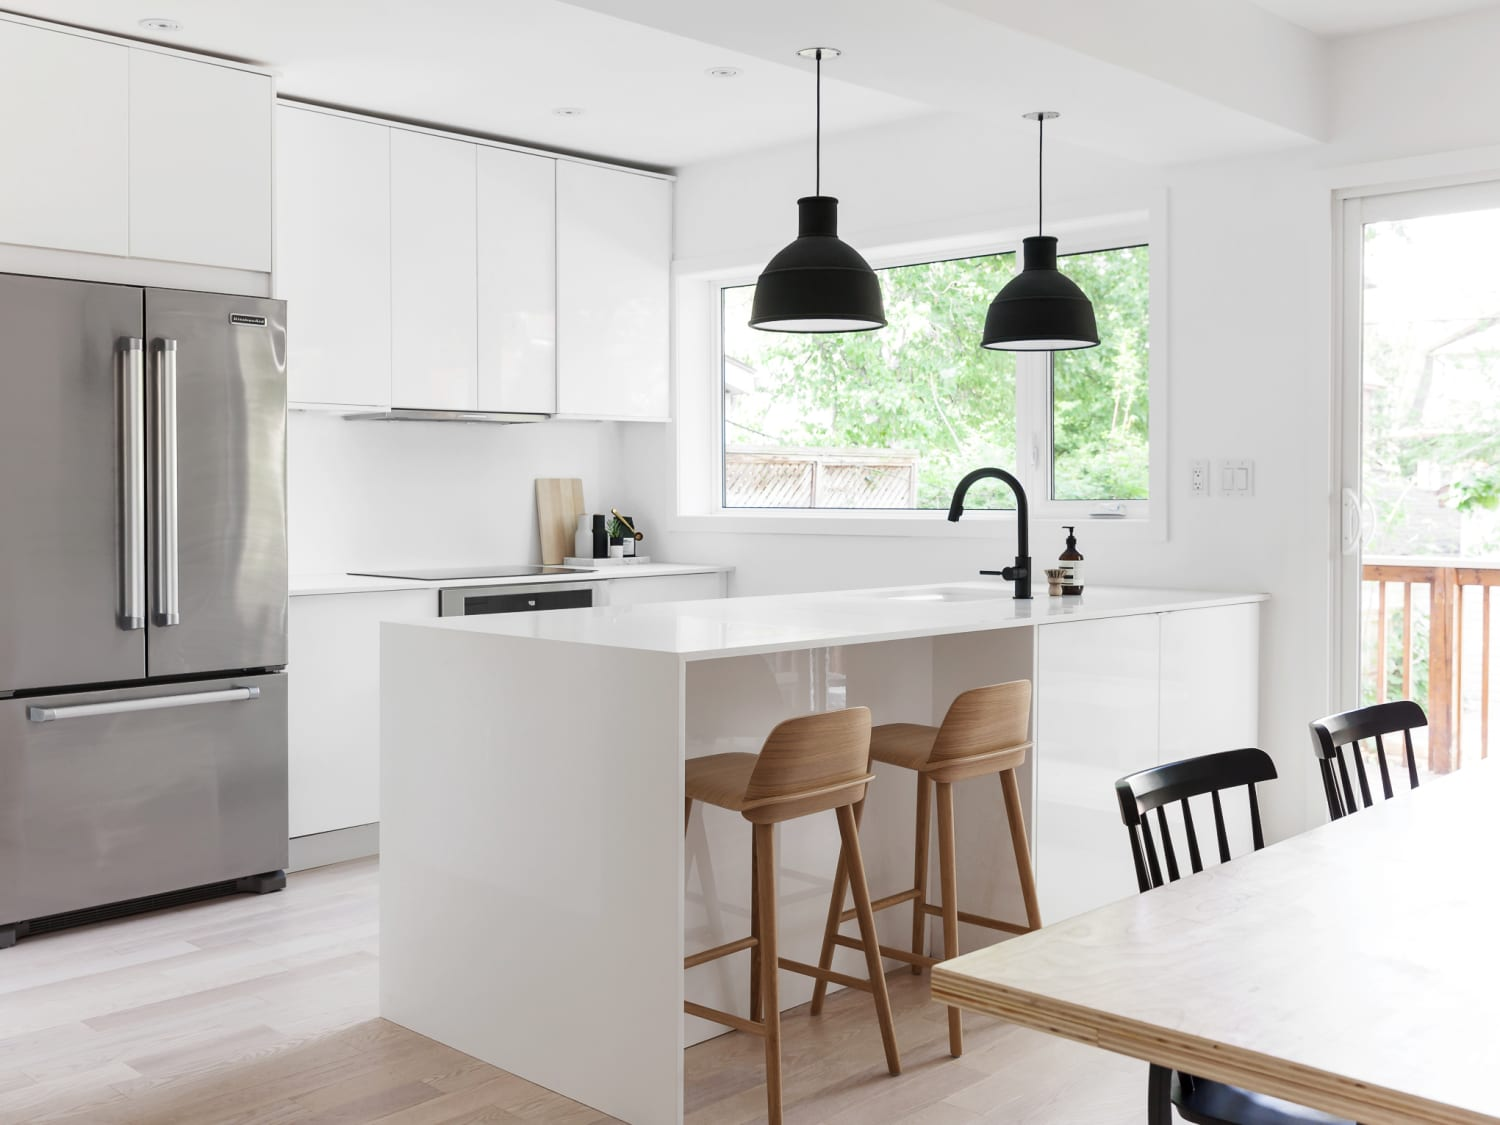 Super 10 Tips For Keeping A Minimalist Kitchen Apartment Therapy Machost Co Dining Chair Design Ideas Machostcouk